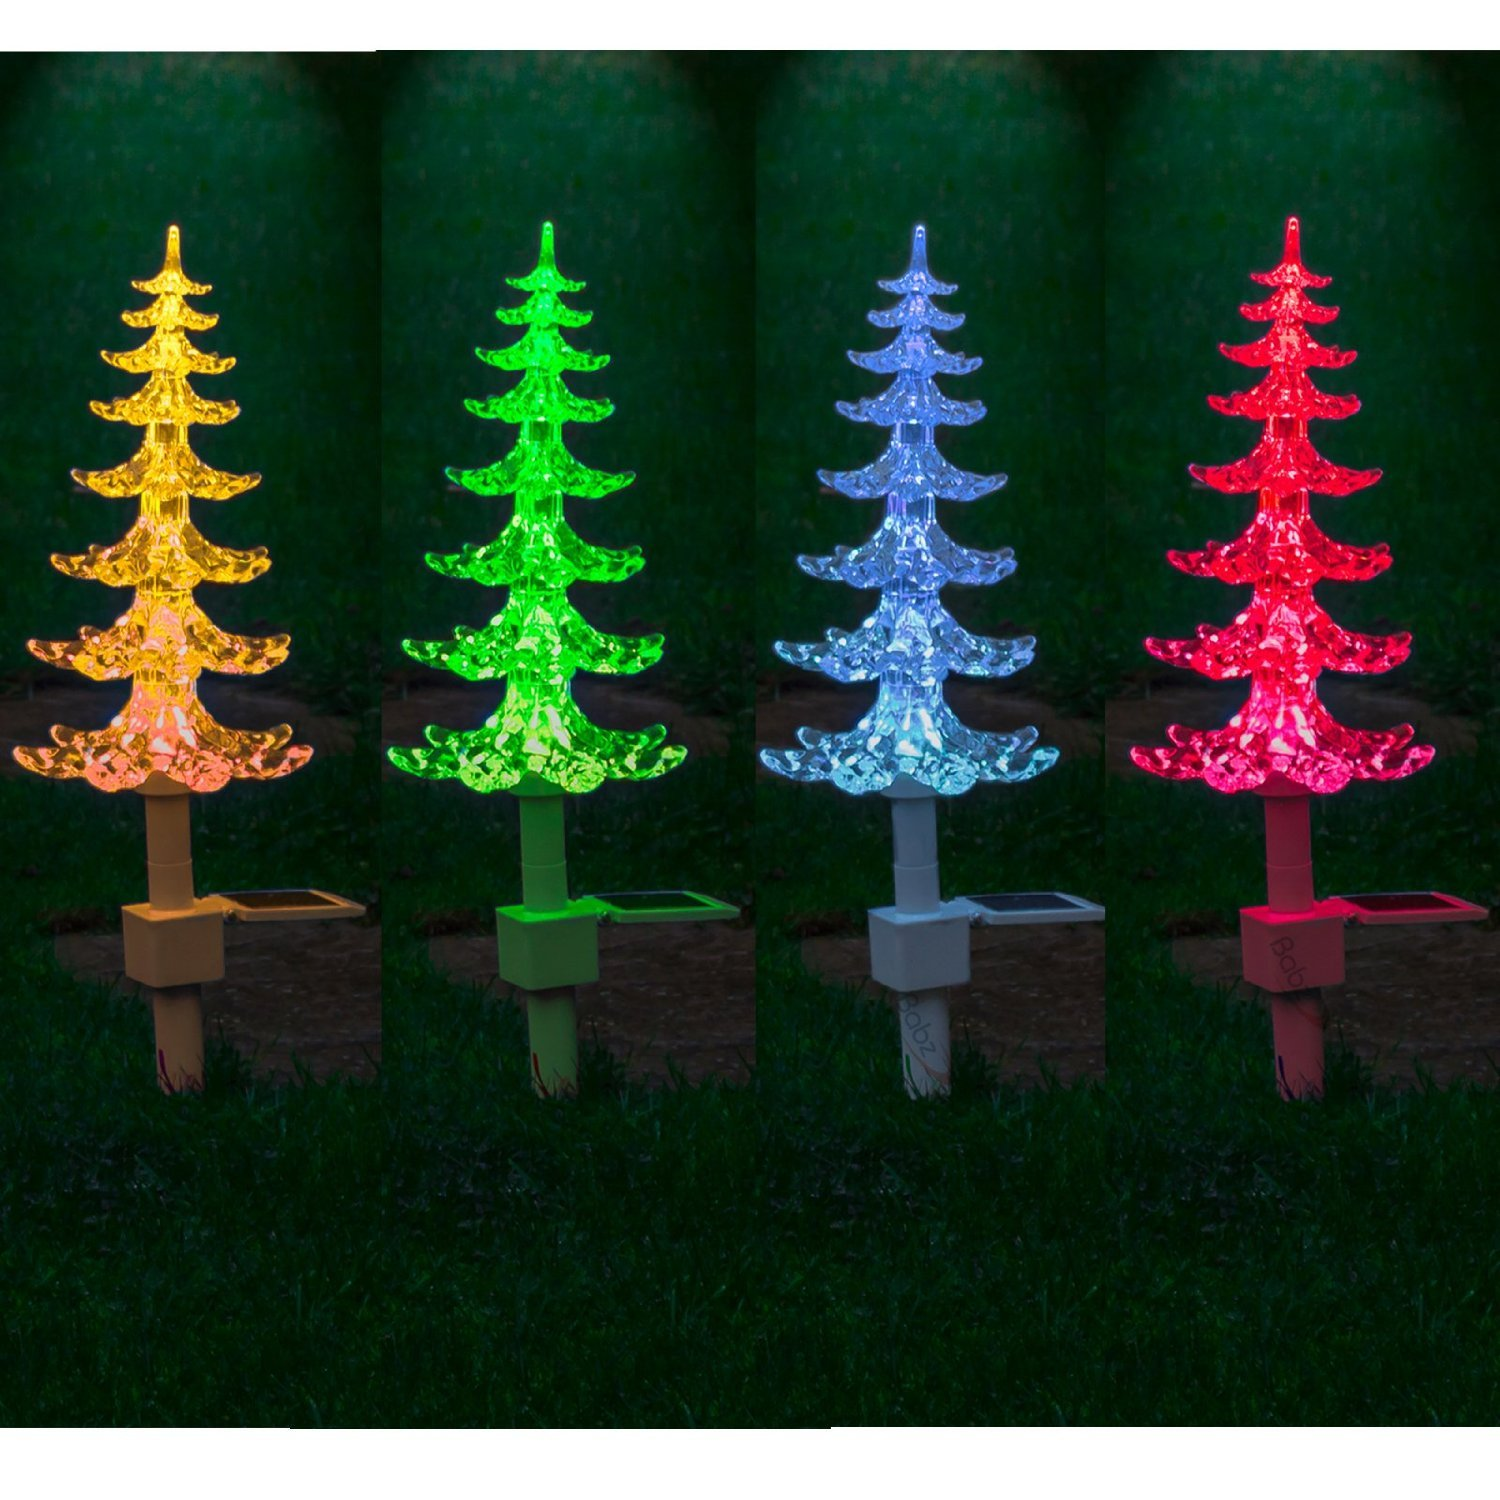 Garden mile® Large Solar powered Colour Changing LED Garden ...